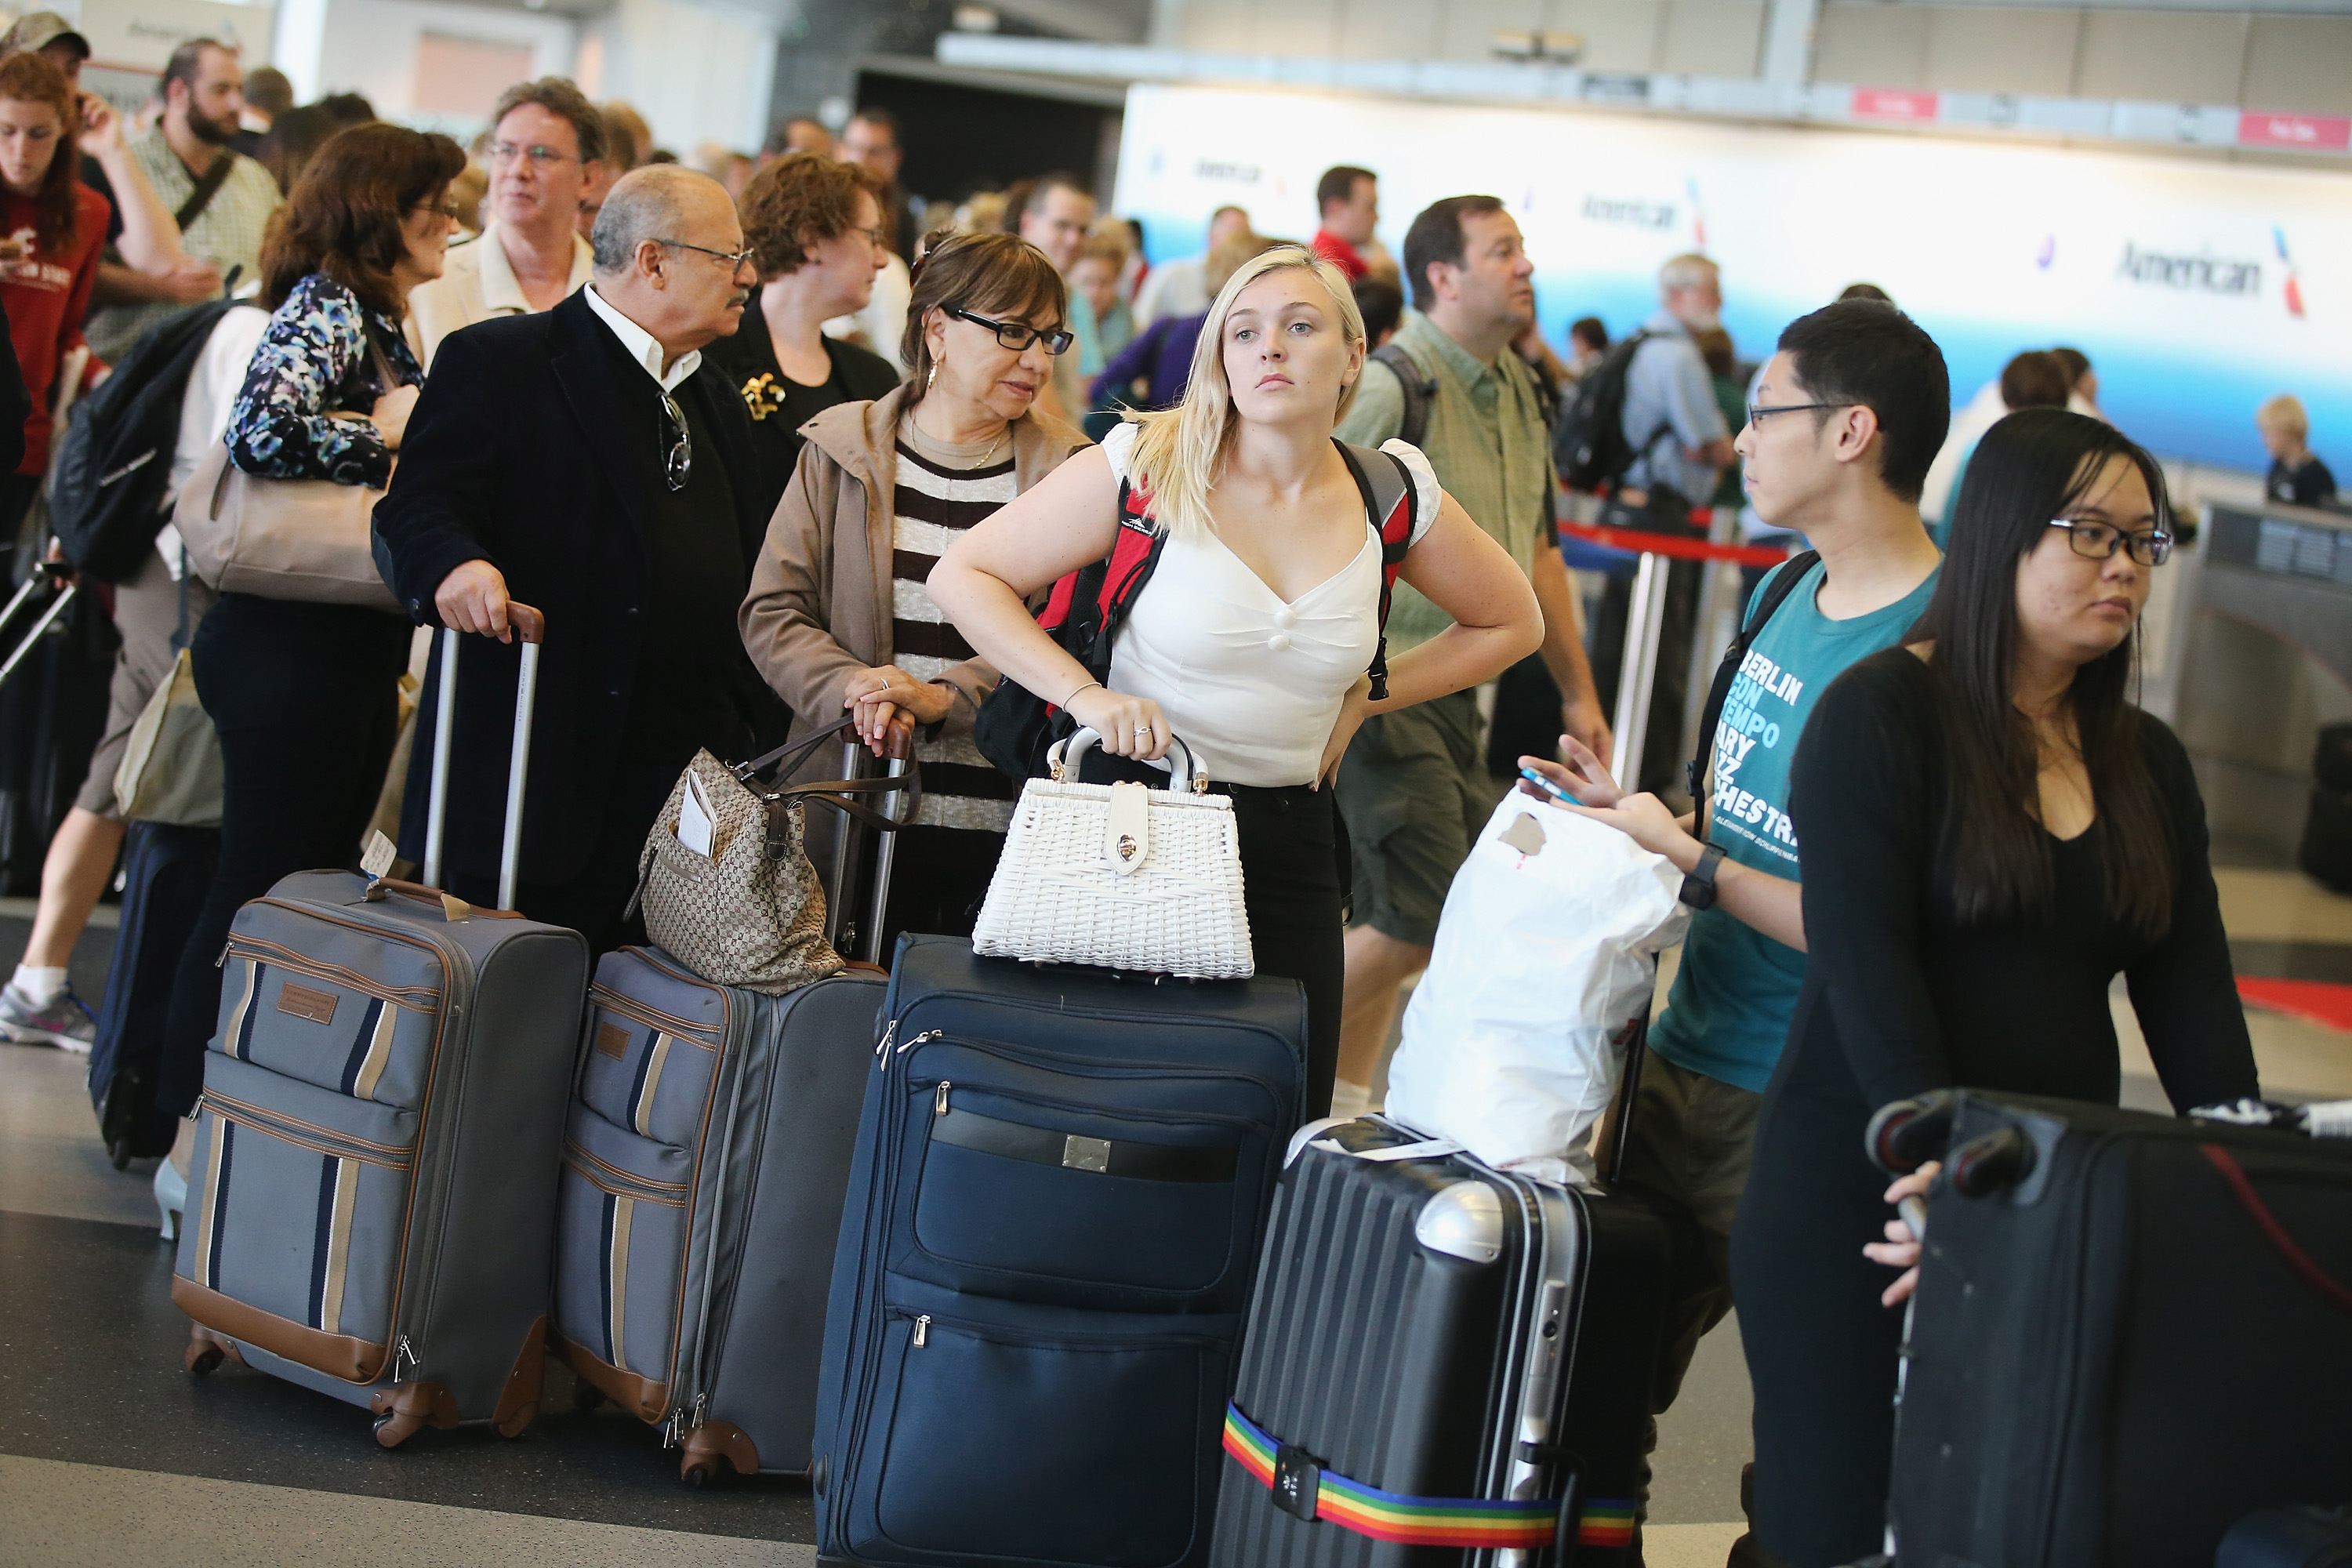 Passengers wait in line to reschedule flights at O'Hare International Airport on September 26, 2014 in Chicago, Illinois.